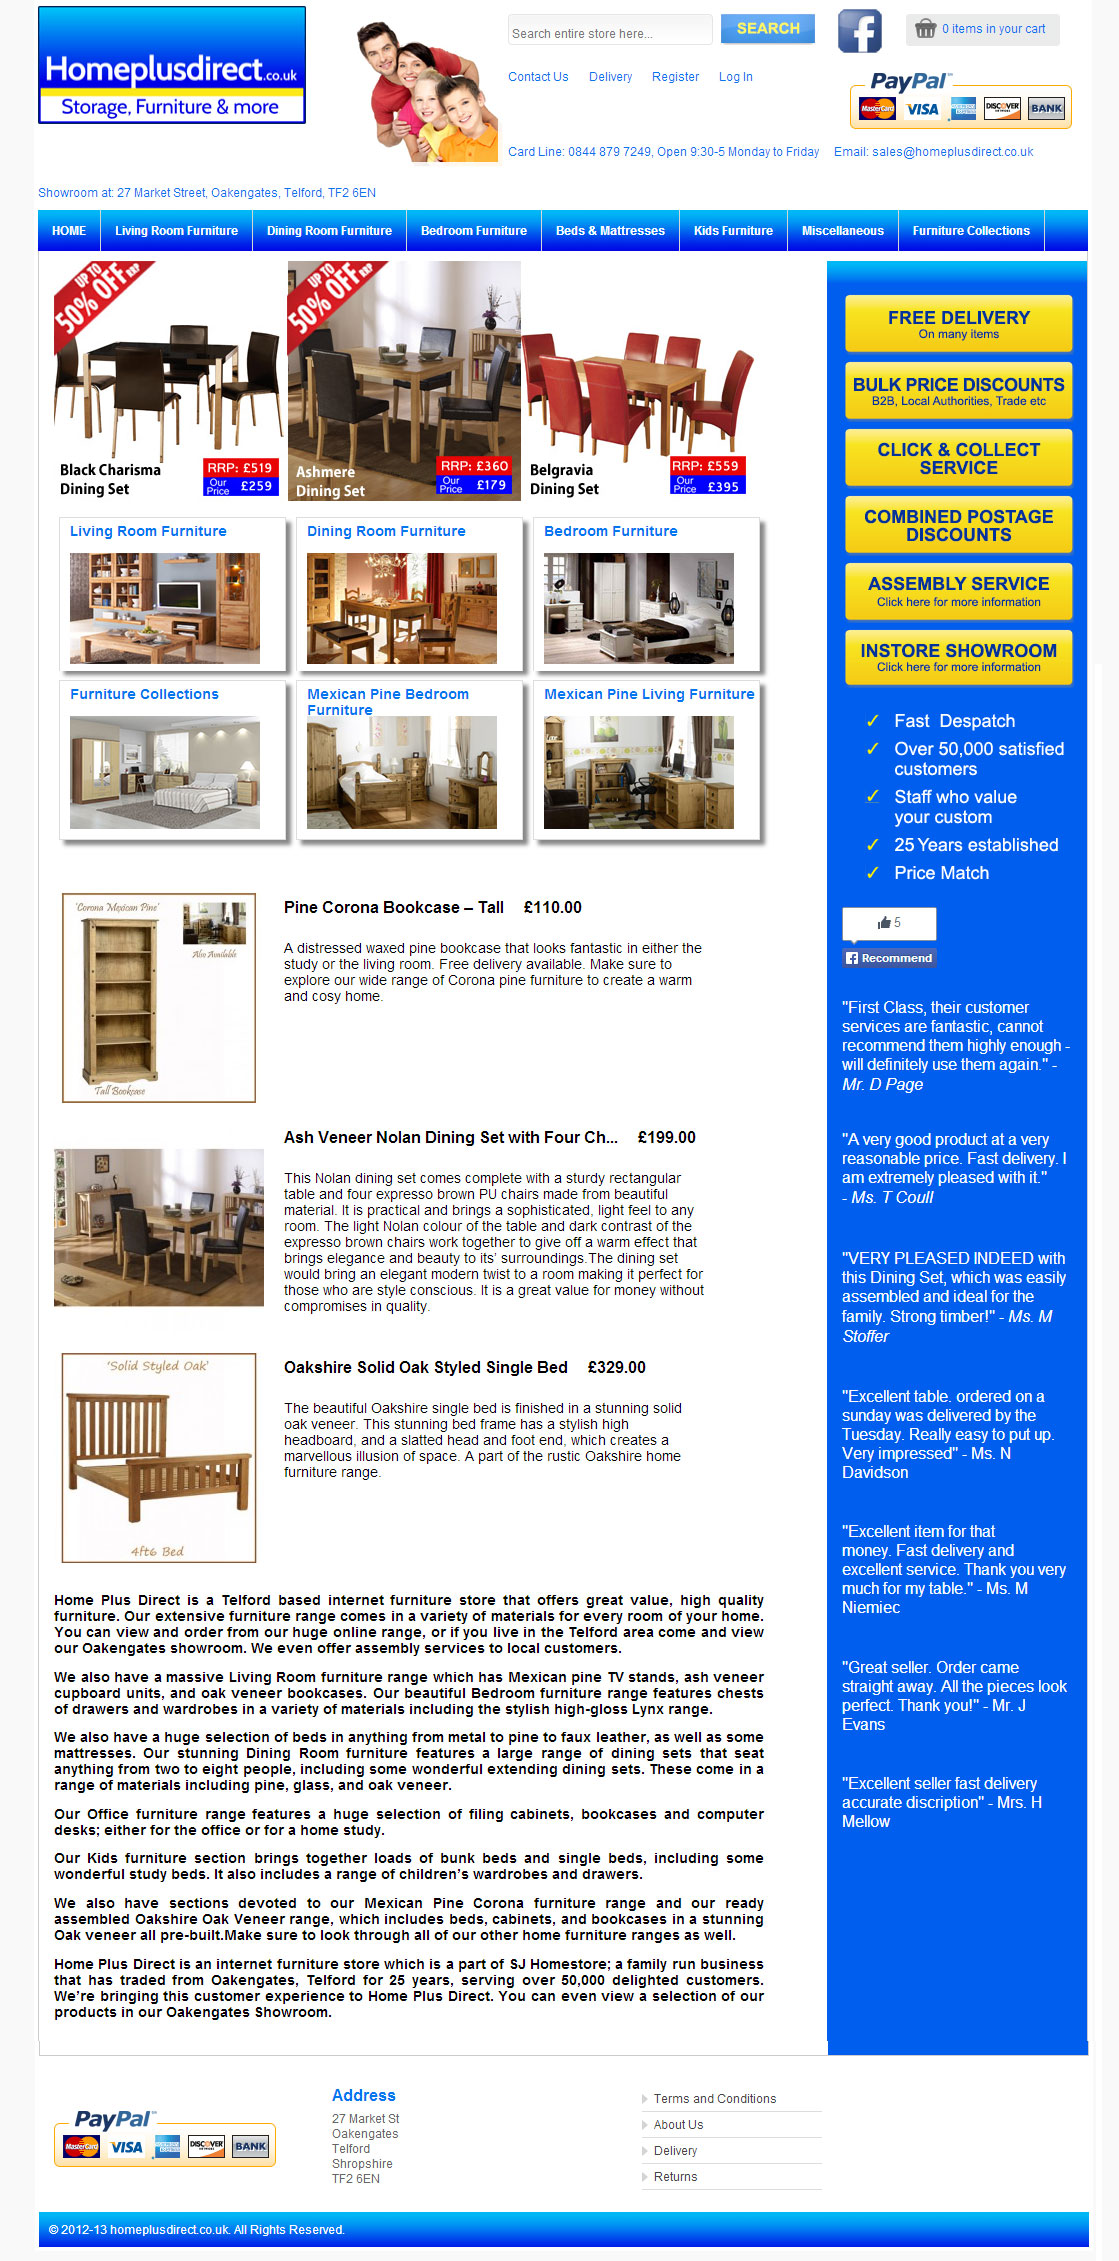 Homeplusdirect Telford Web Design At Runtime Telford Web Design At Runtime